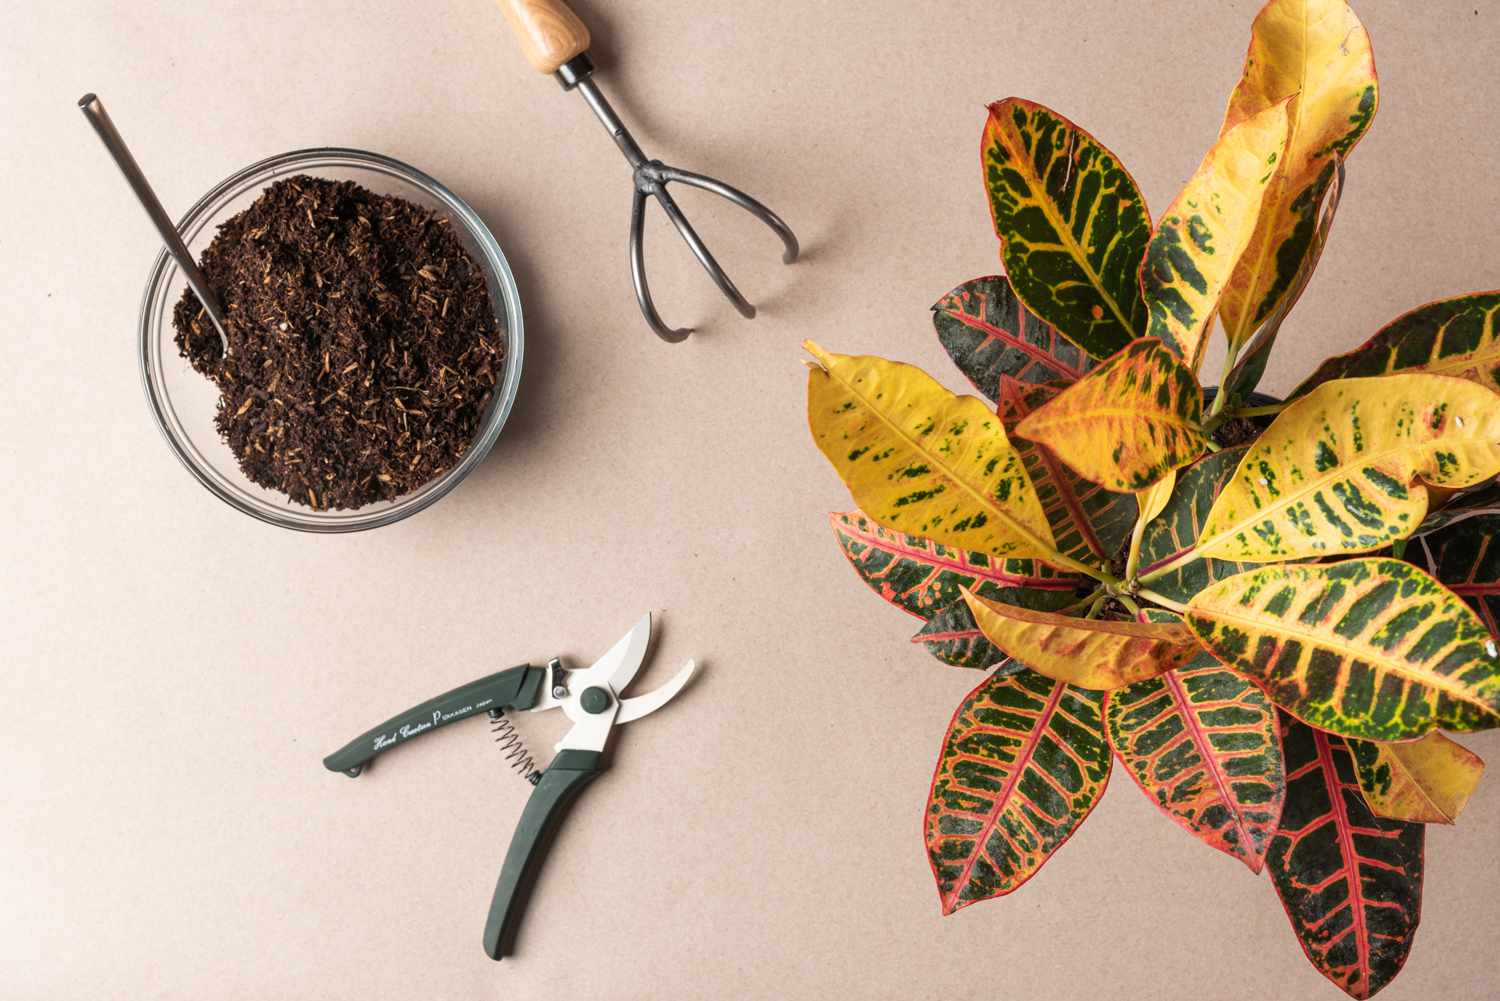 caring for a rootbound plant materials